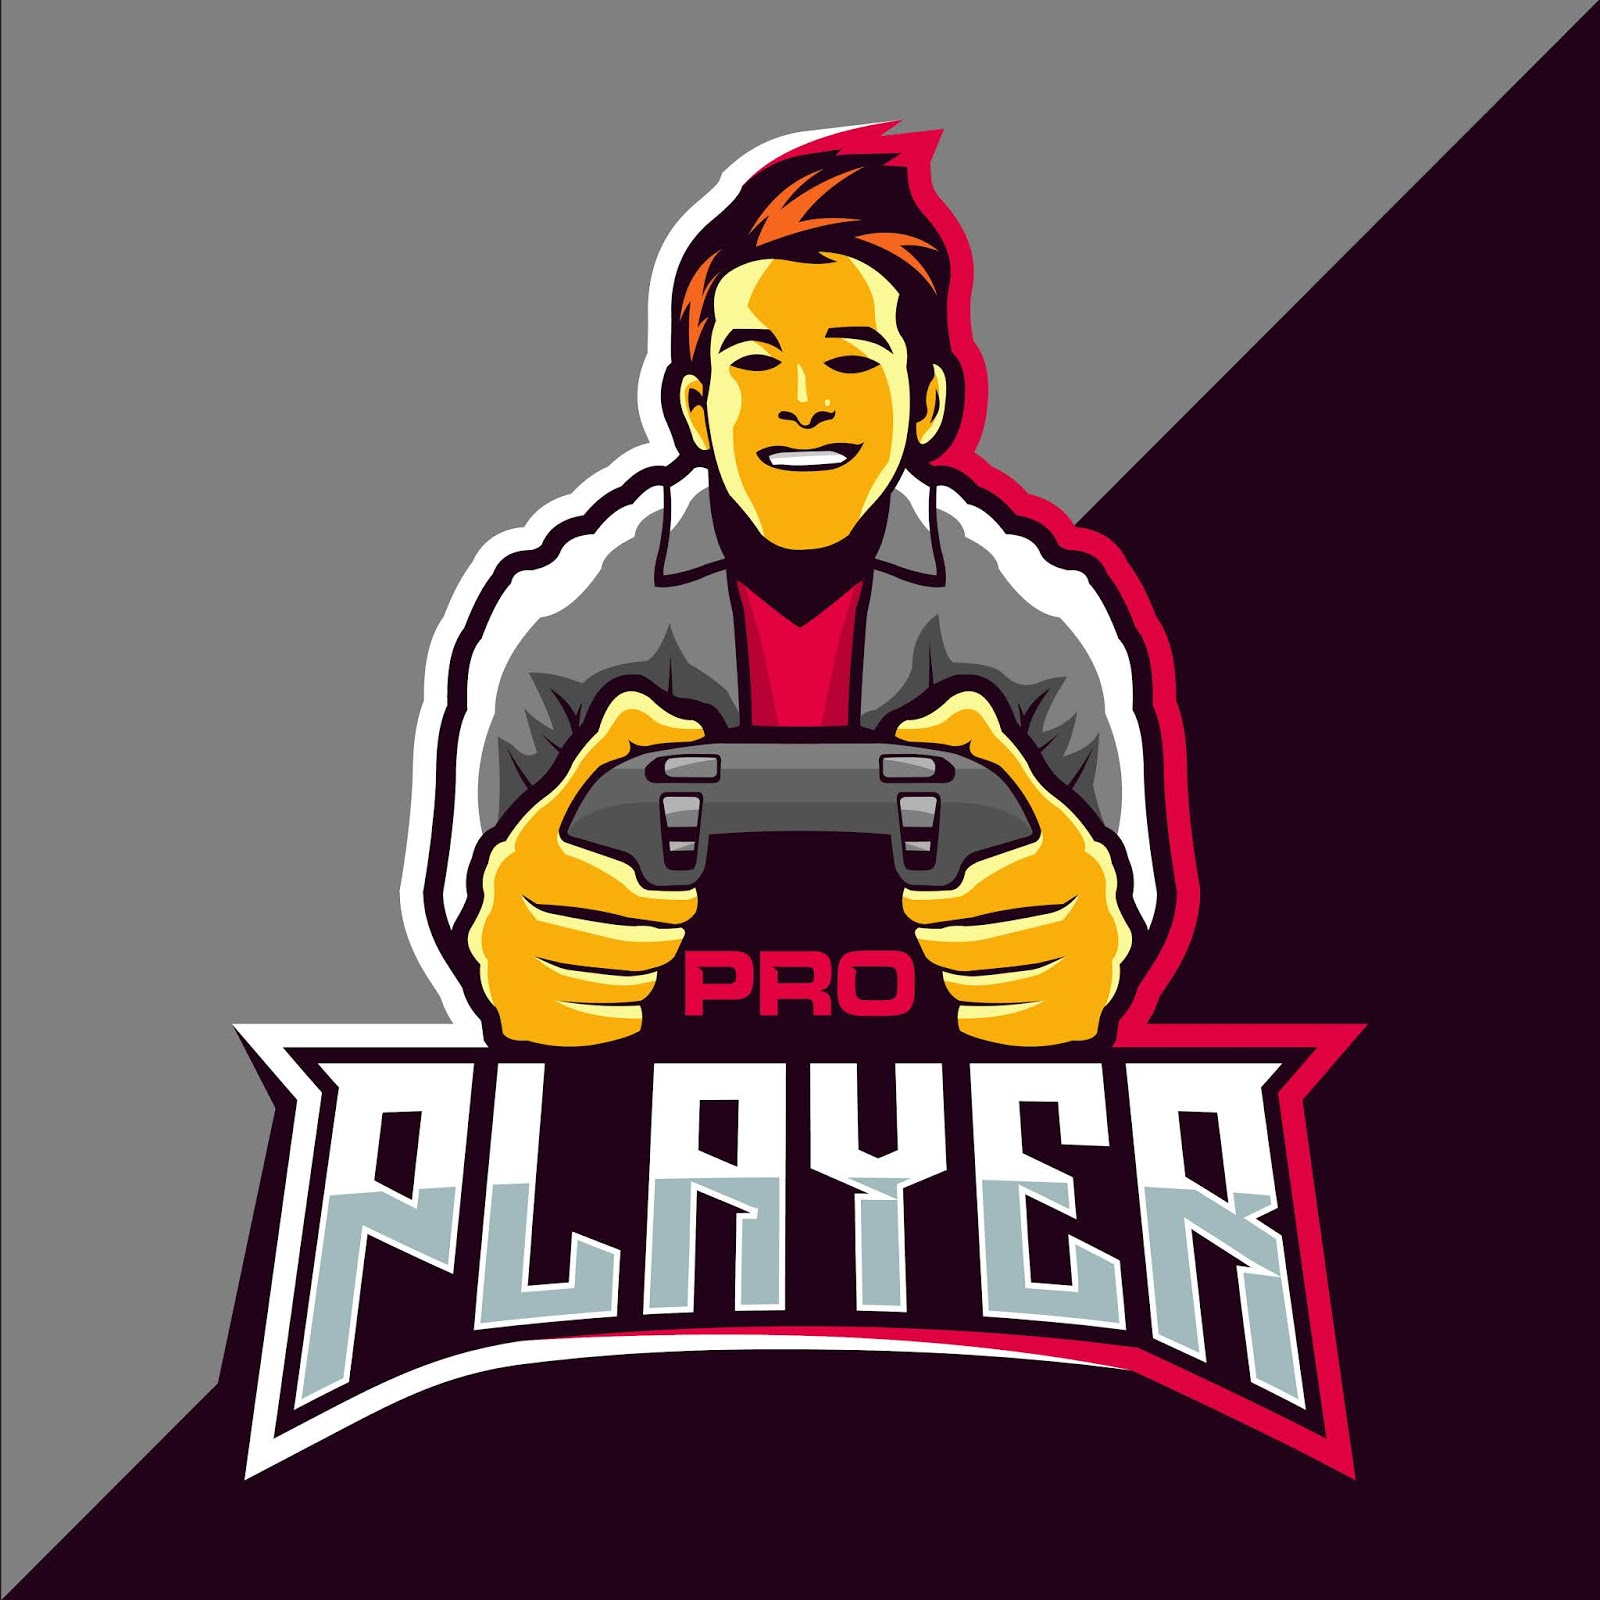 Pro Player Esport Game Style Free Download Vector CDR, AI, EPS and PNG Formats